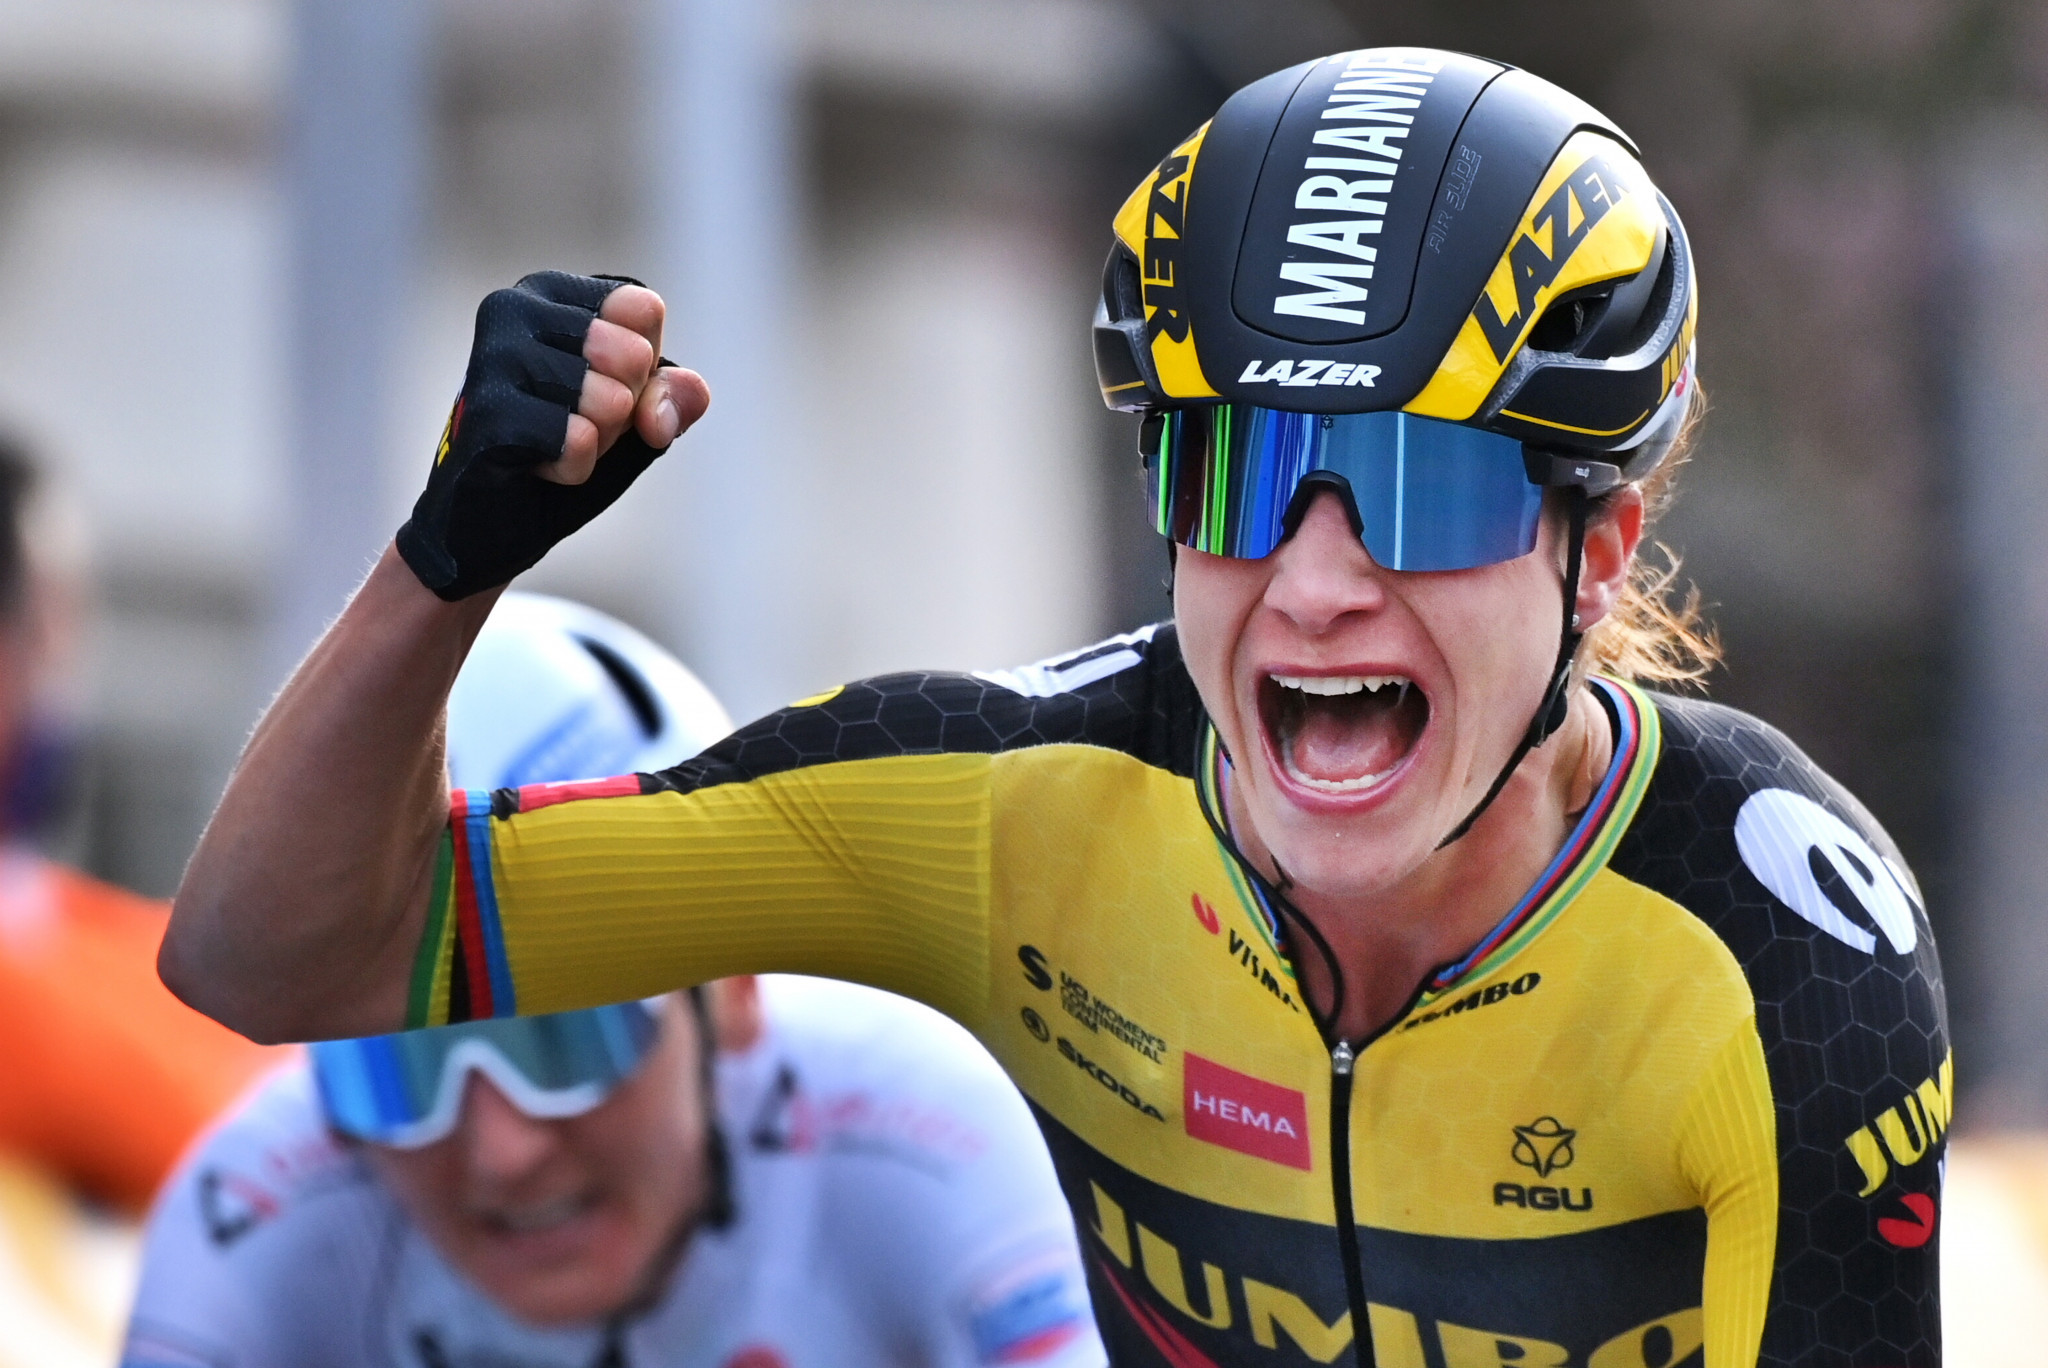 Vos wins from breakaway on third stage of Giro Donne